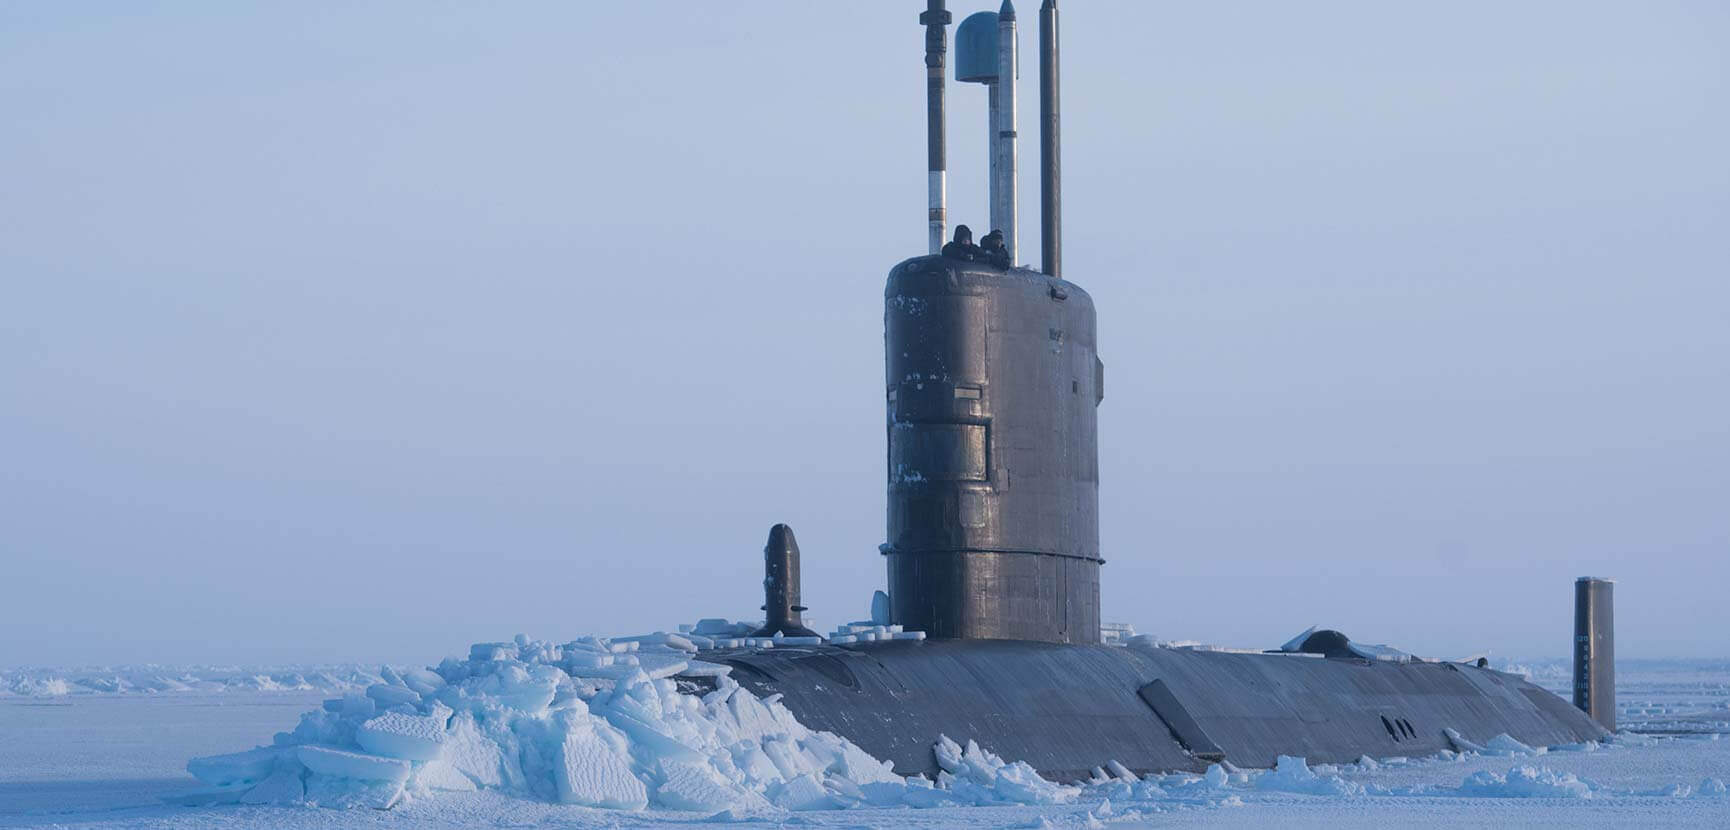 Royal Navy returns to the Arctic – HMS Trenchant surfaces in the ice